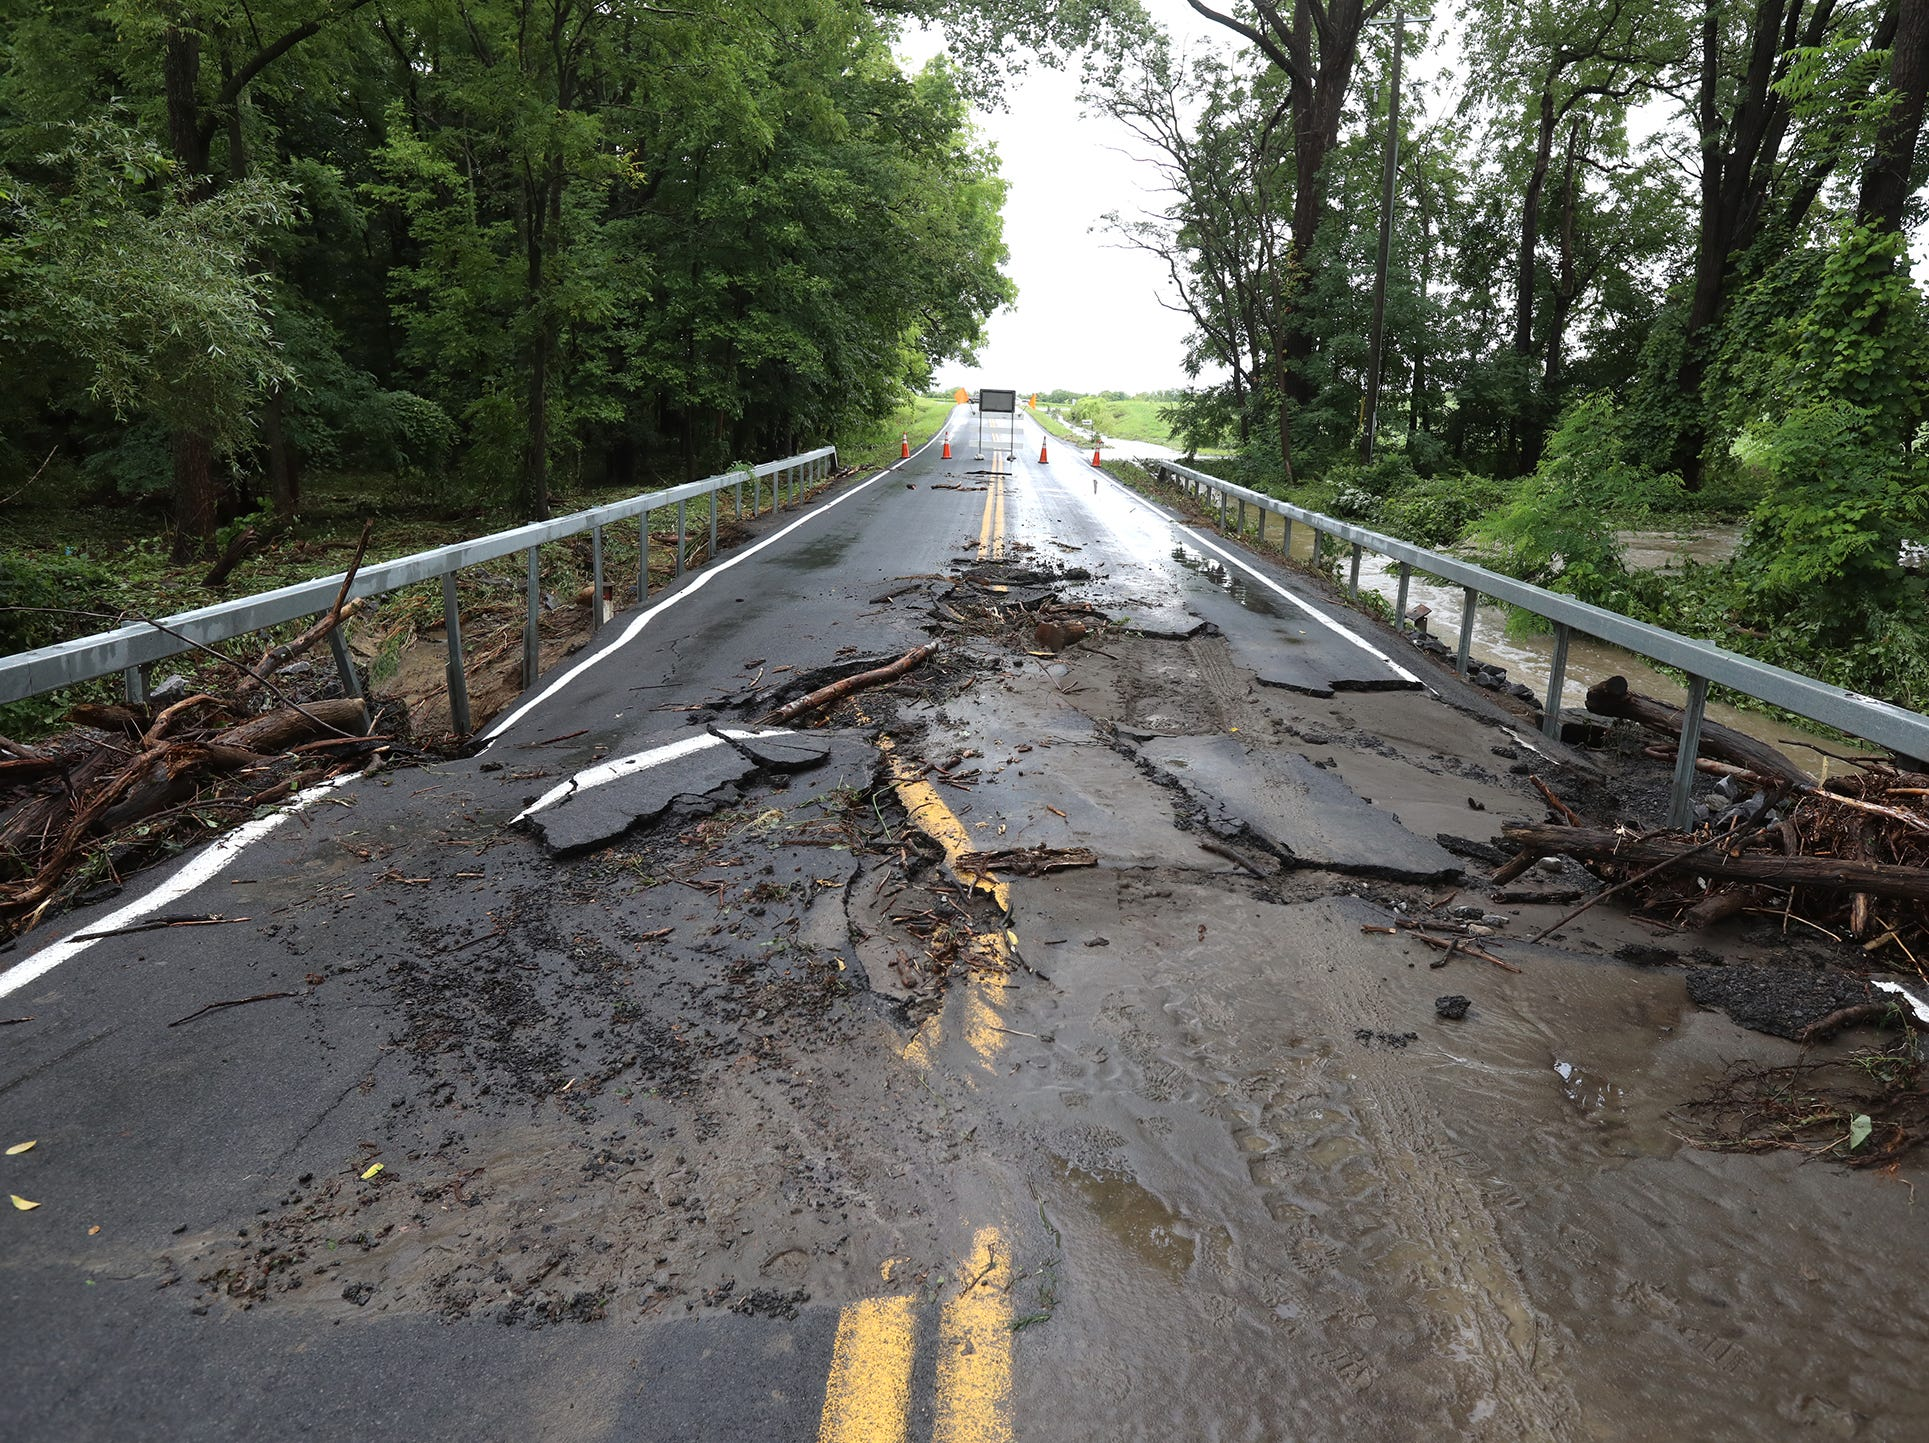 County Road 131 was damaged with portions of it washed away after heavy rain in Lodi, New York on Tuesday, August 14, 2018.